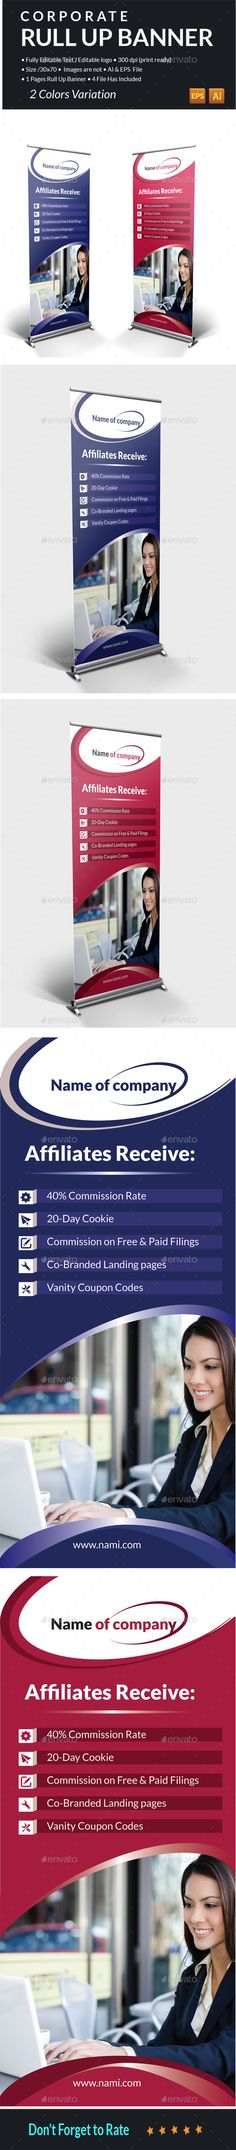 Corporate RulUp Banner #template #elegant Download : https://graphicriver.net/item/corporate-rulup-banner/14428923?ref=pxcr